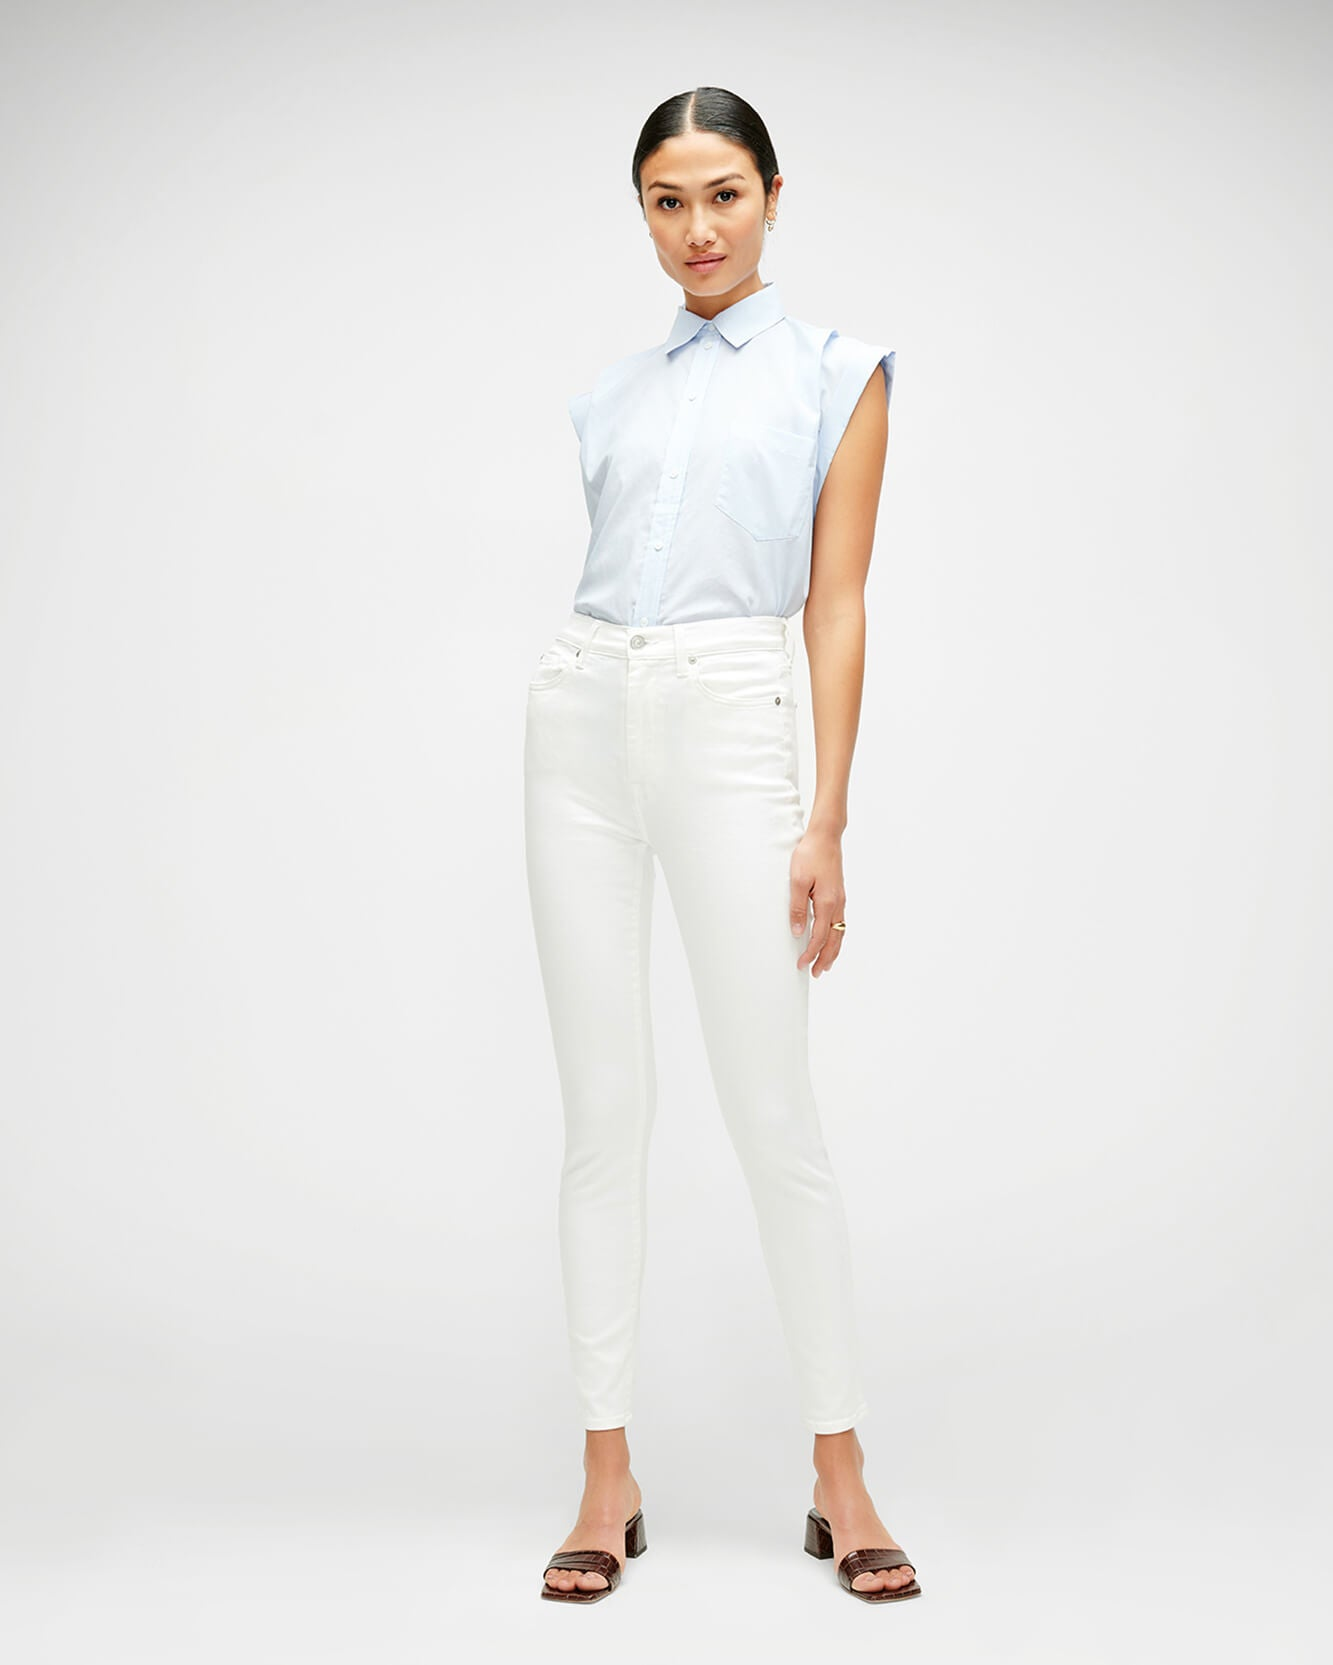 How to style white jeans this summer